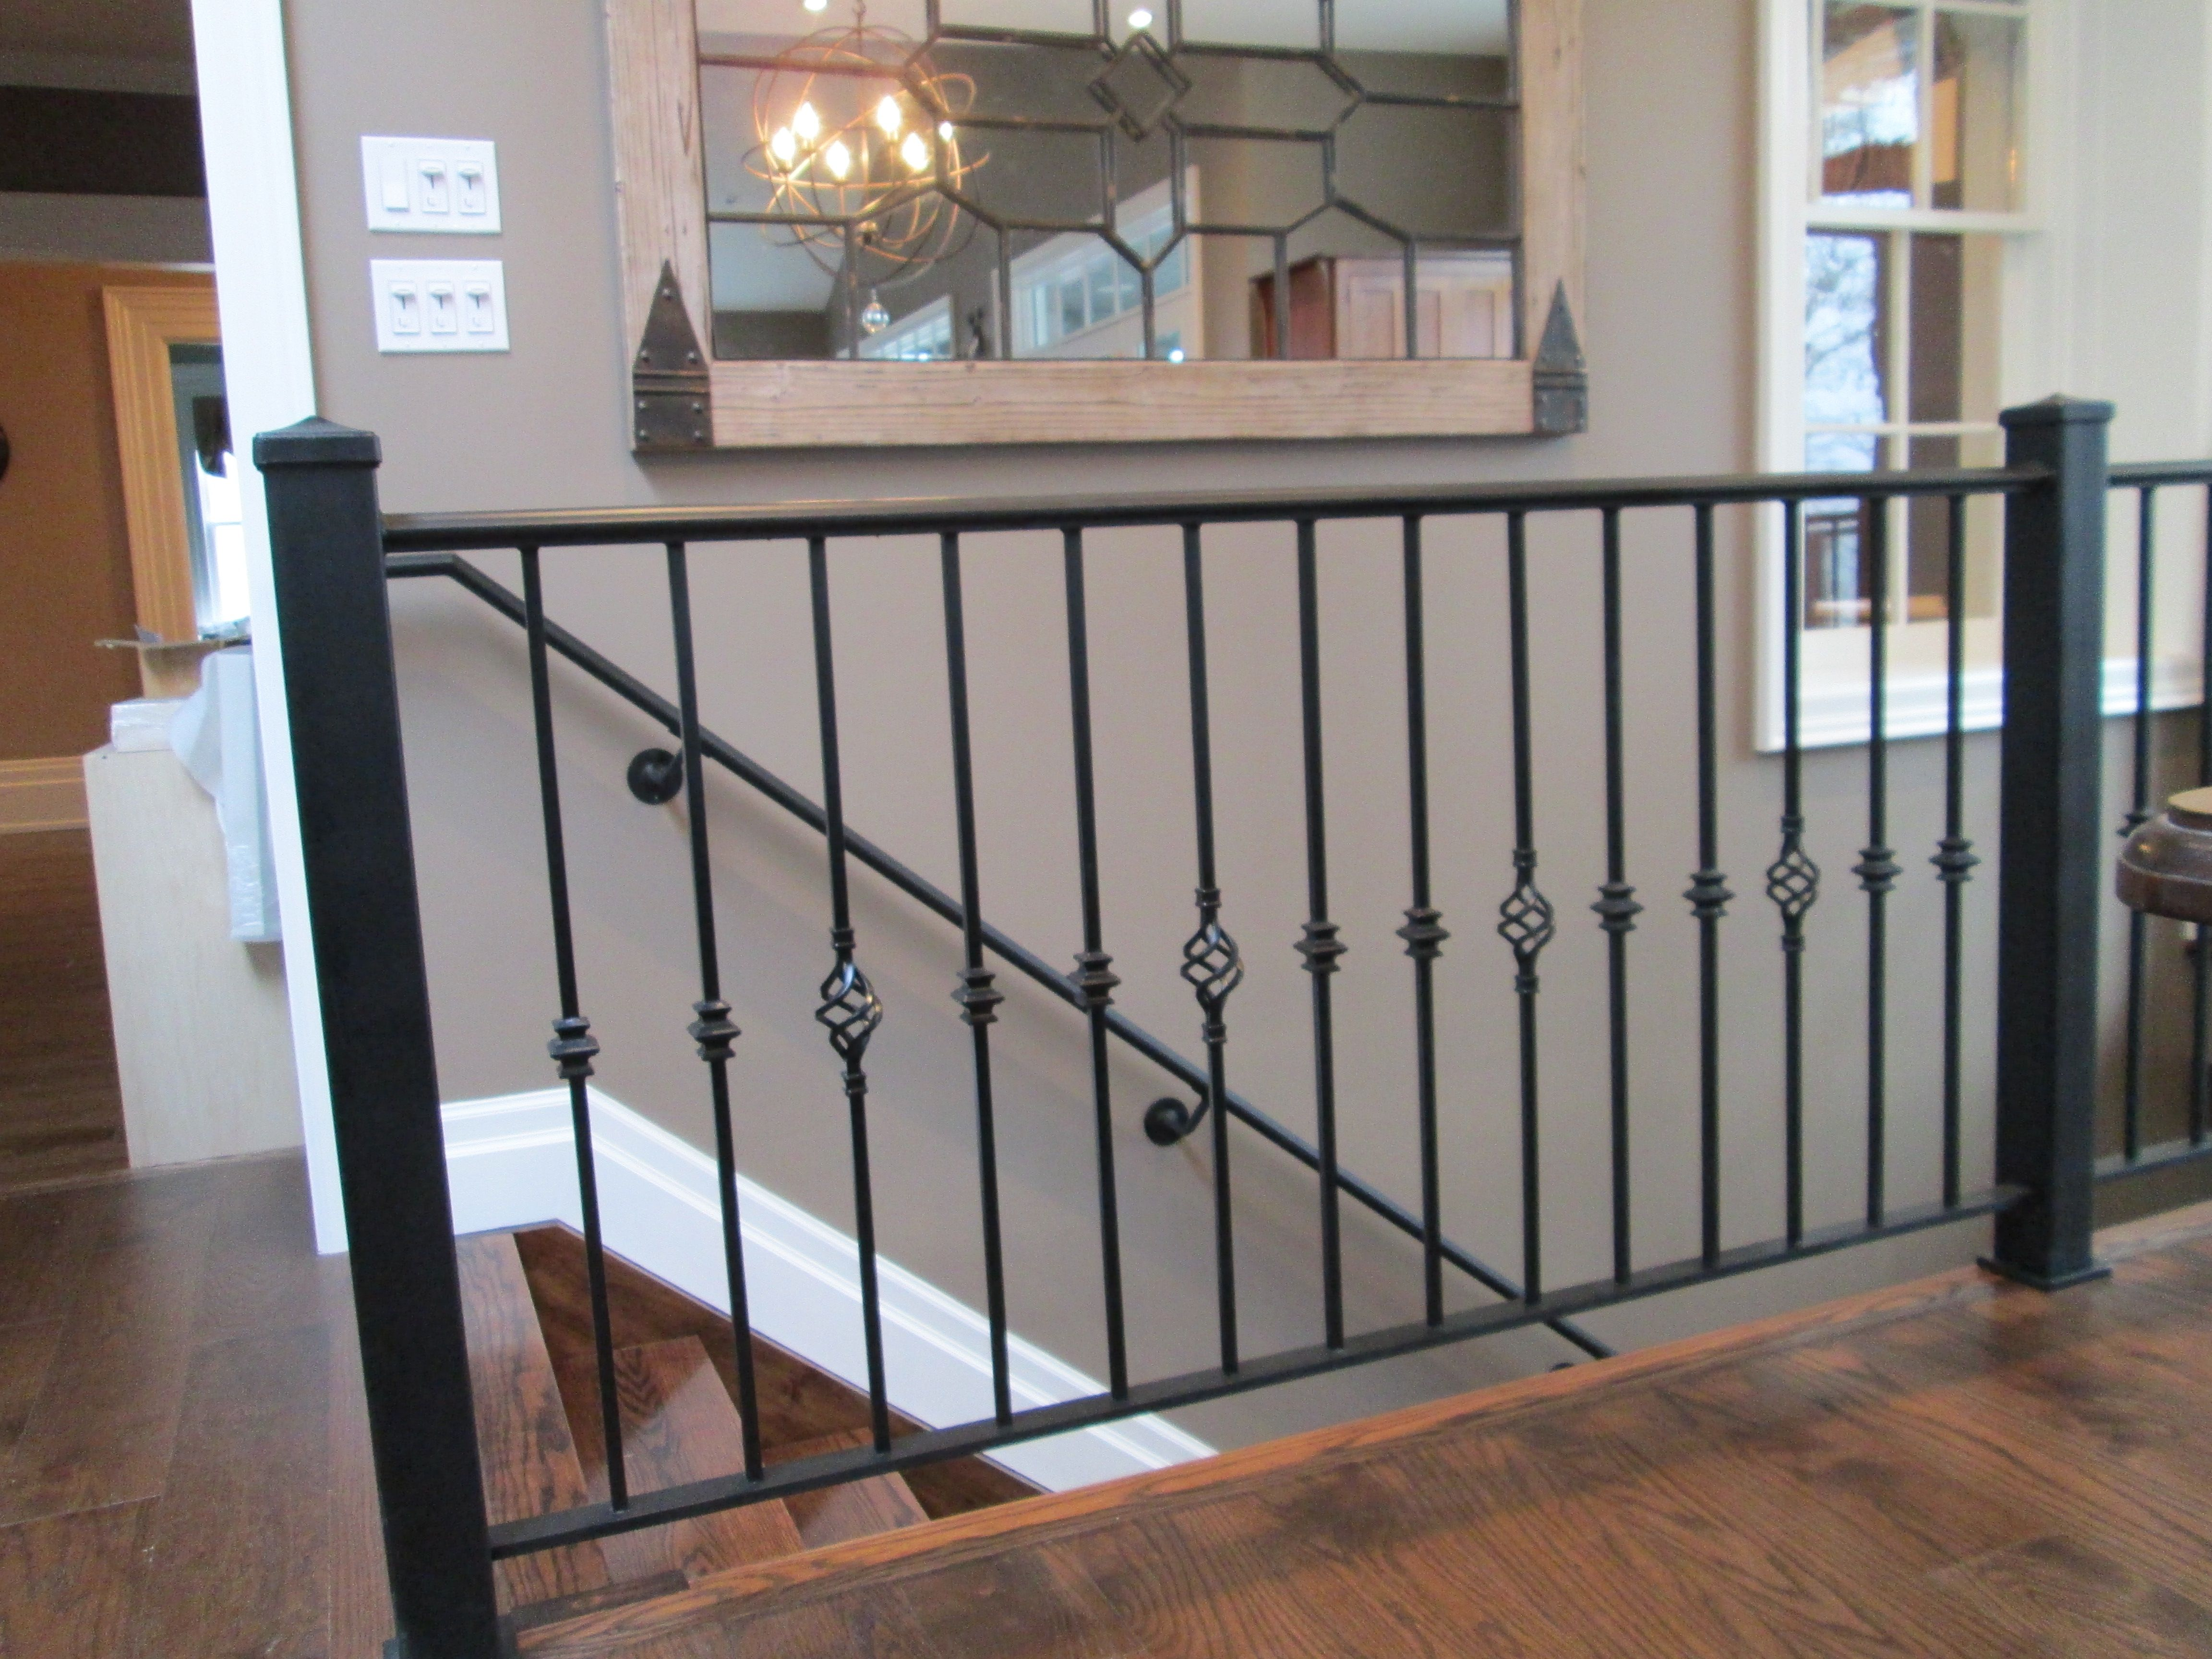 Best Wrought Iron Railing With Decorative Collared Pickets 400 x 300